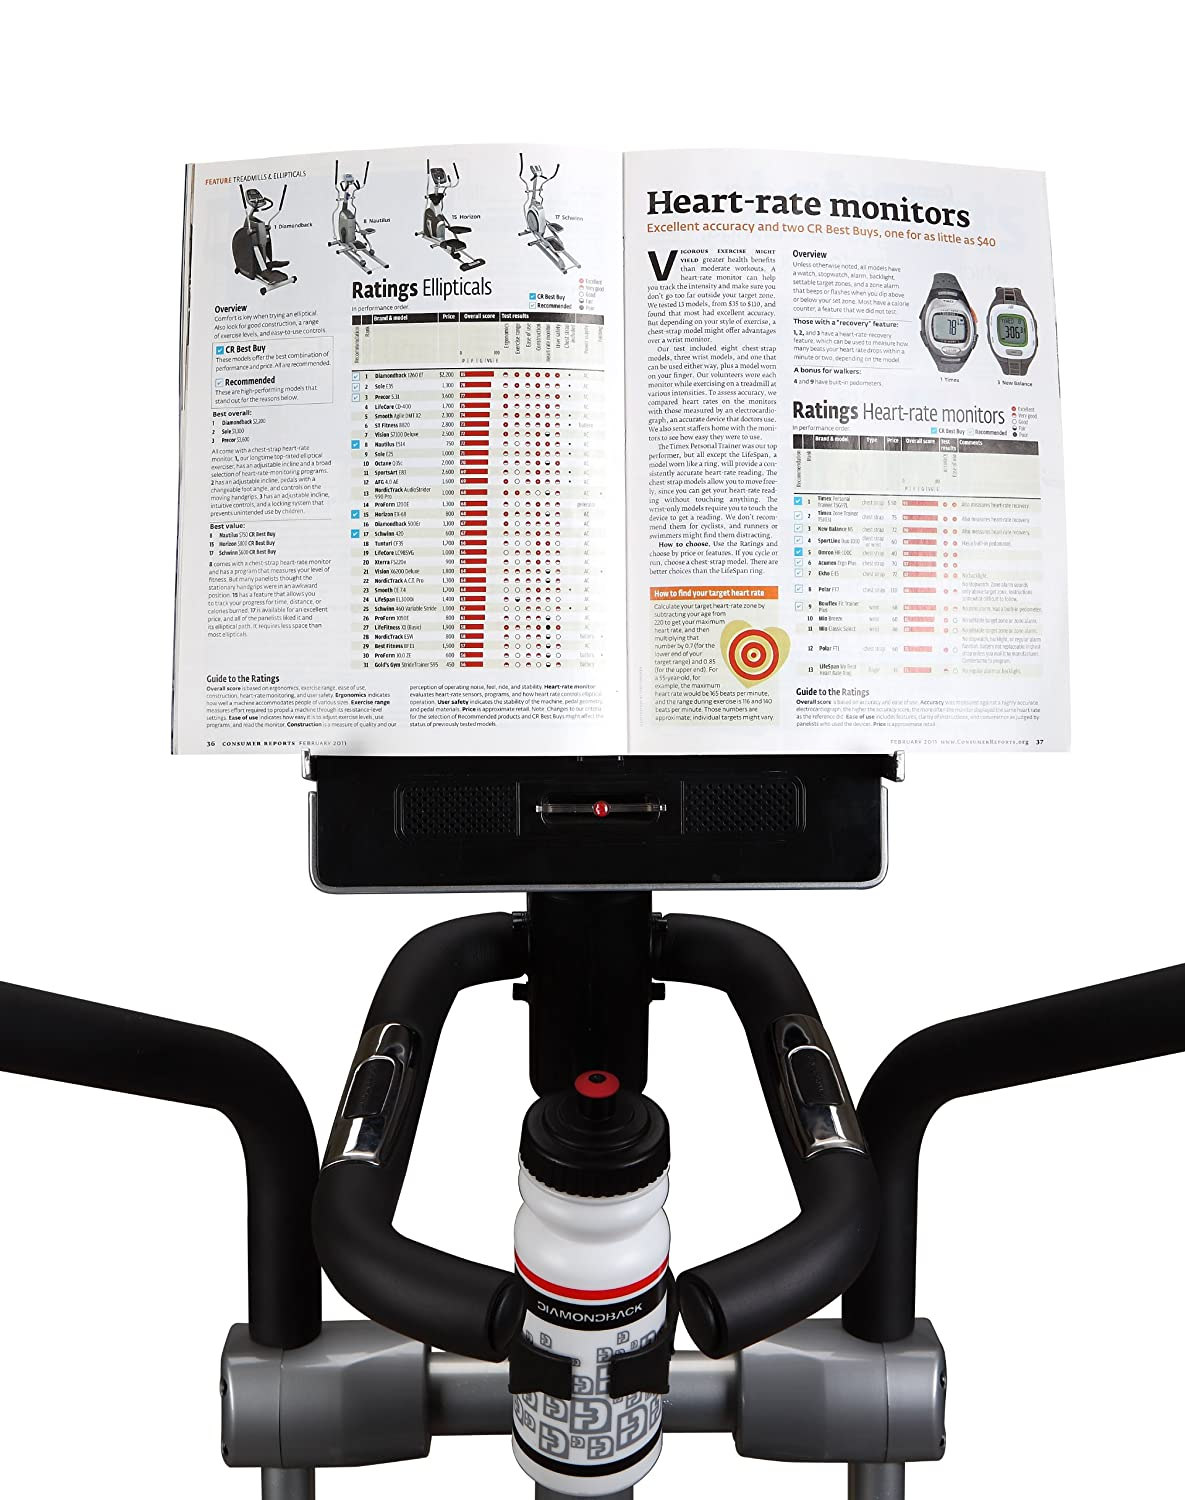 Amazon.com : Diamondback Fitness 910Ef Elliptical - Front Drive : Elliptical Trainers : Sports & Outdoors